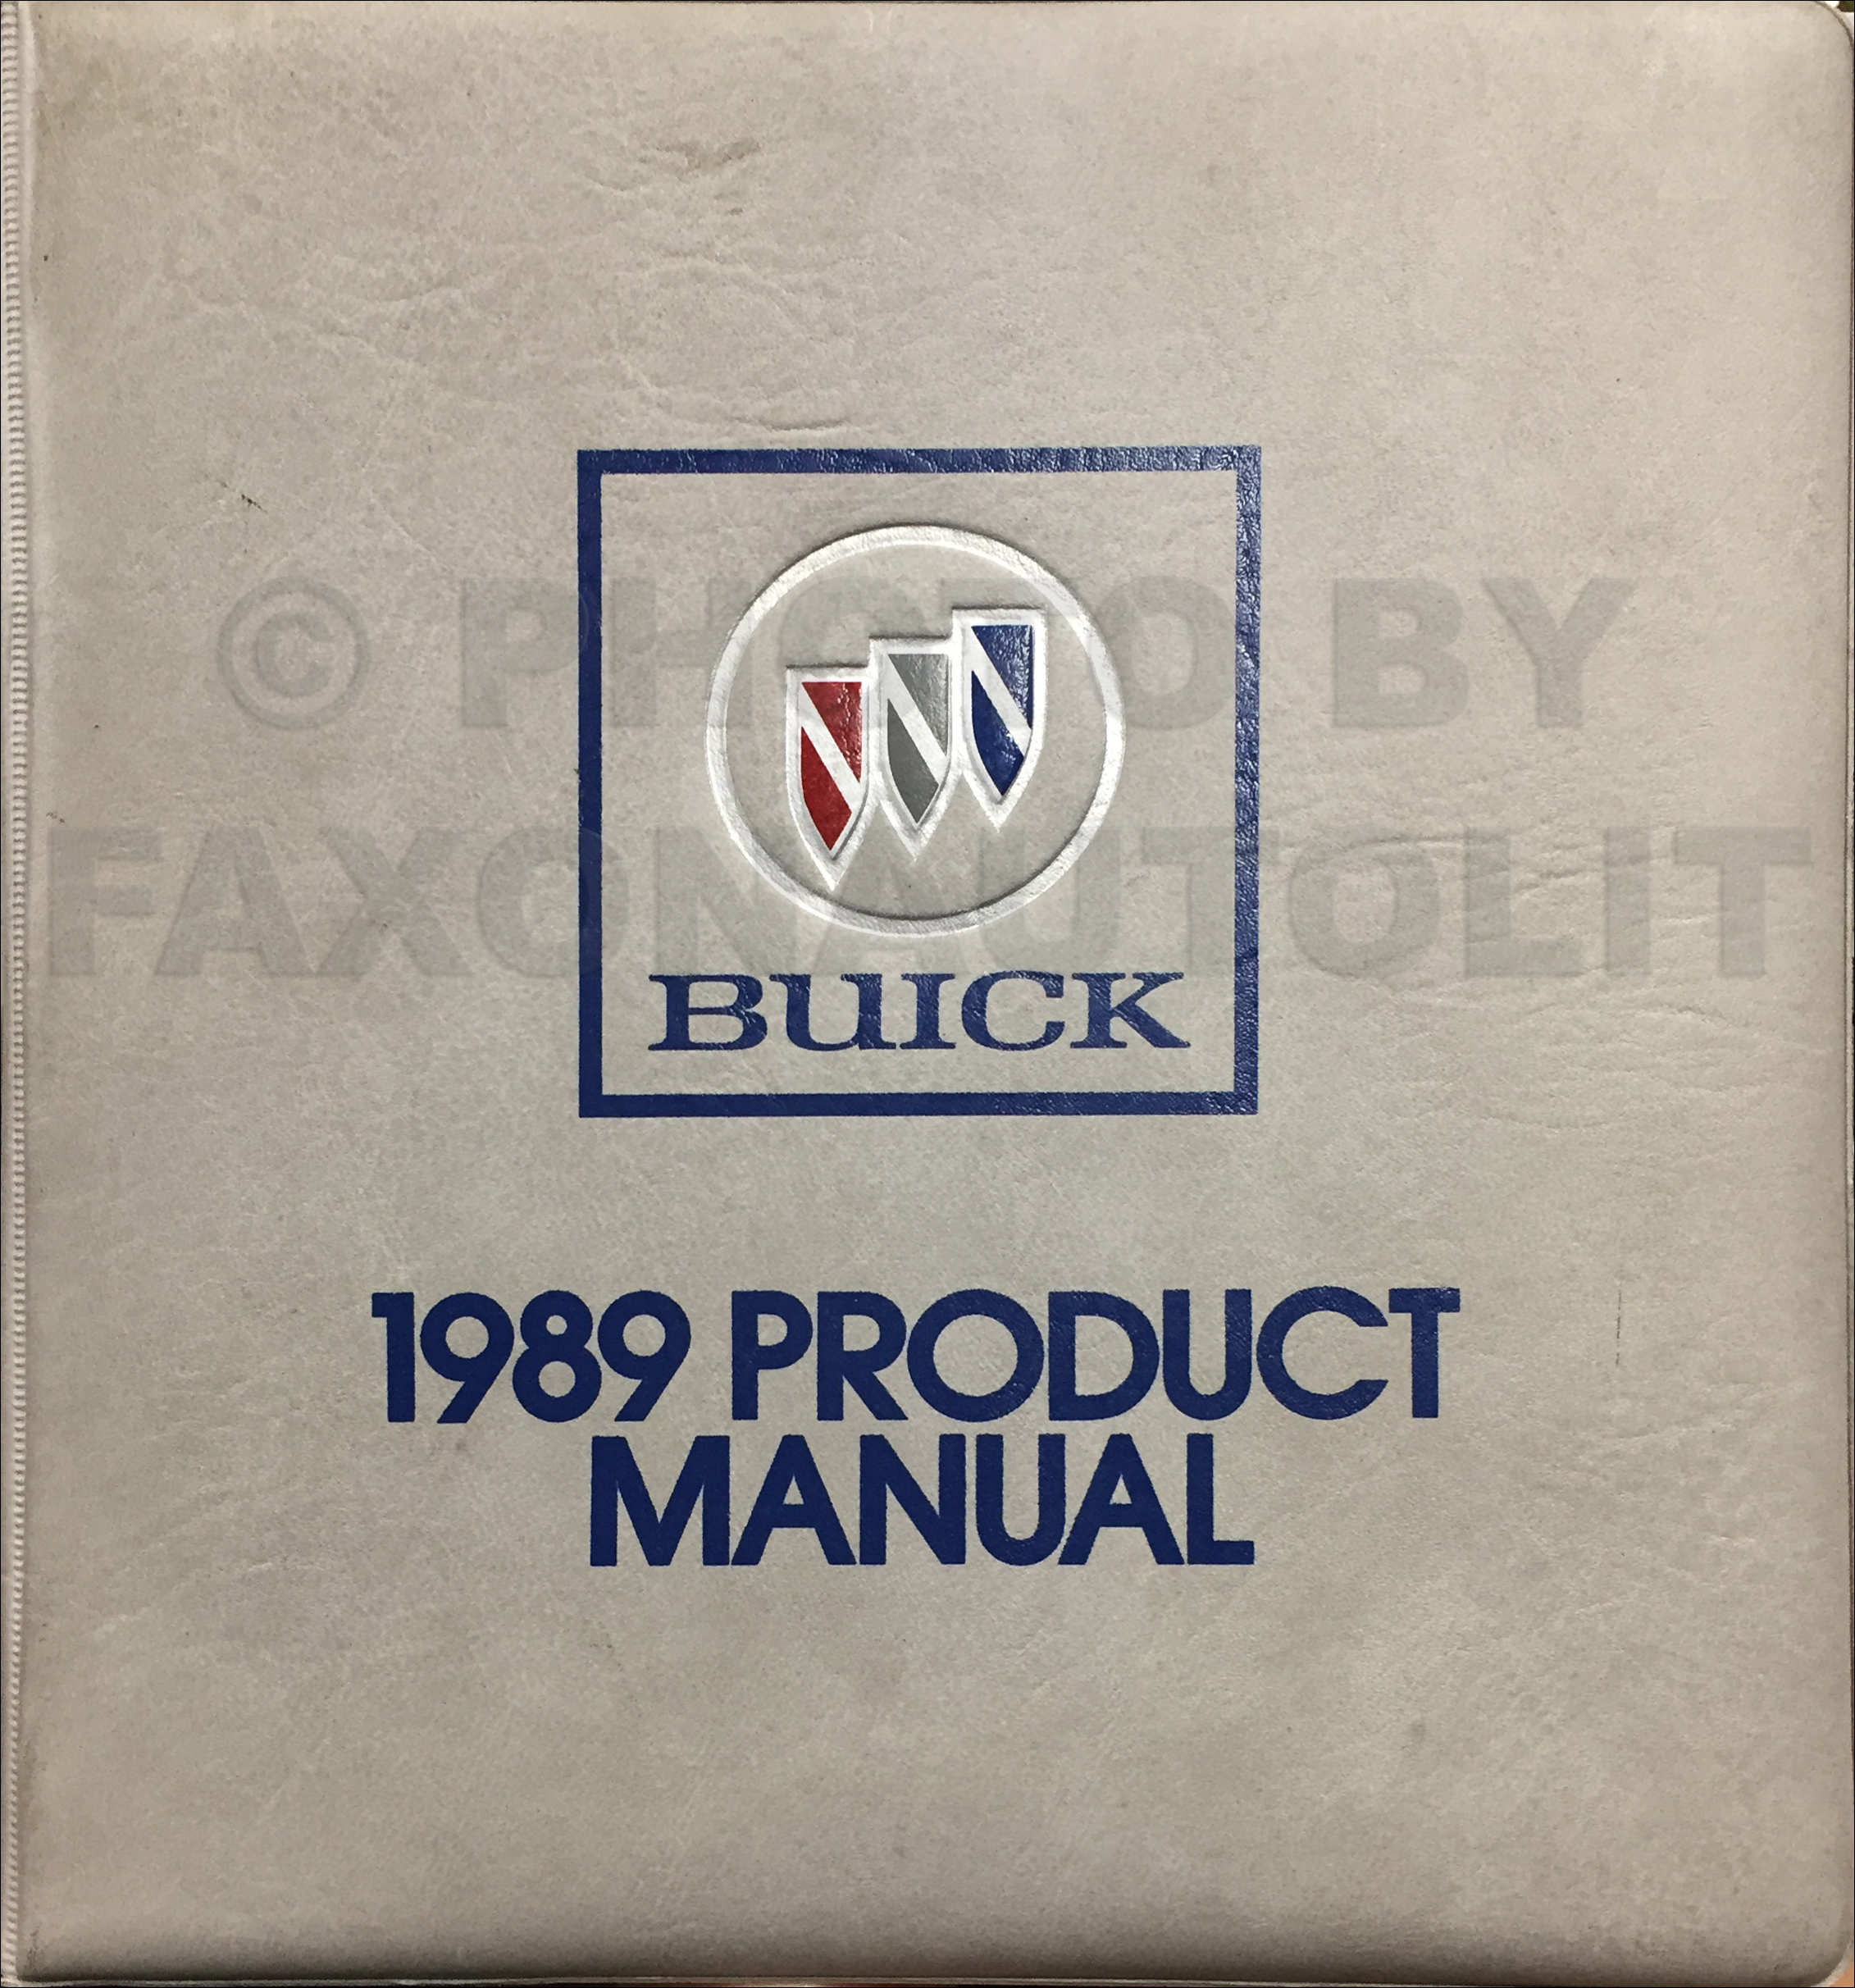 1989 Buick Color & Upholstery Dealer Album/Data Book Dealer Album Original